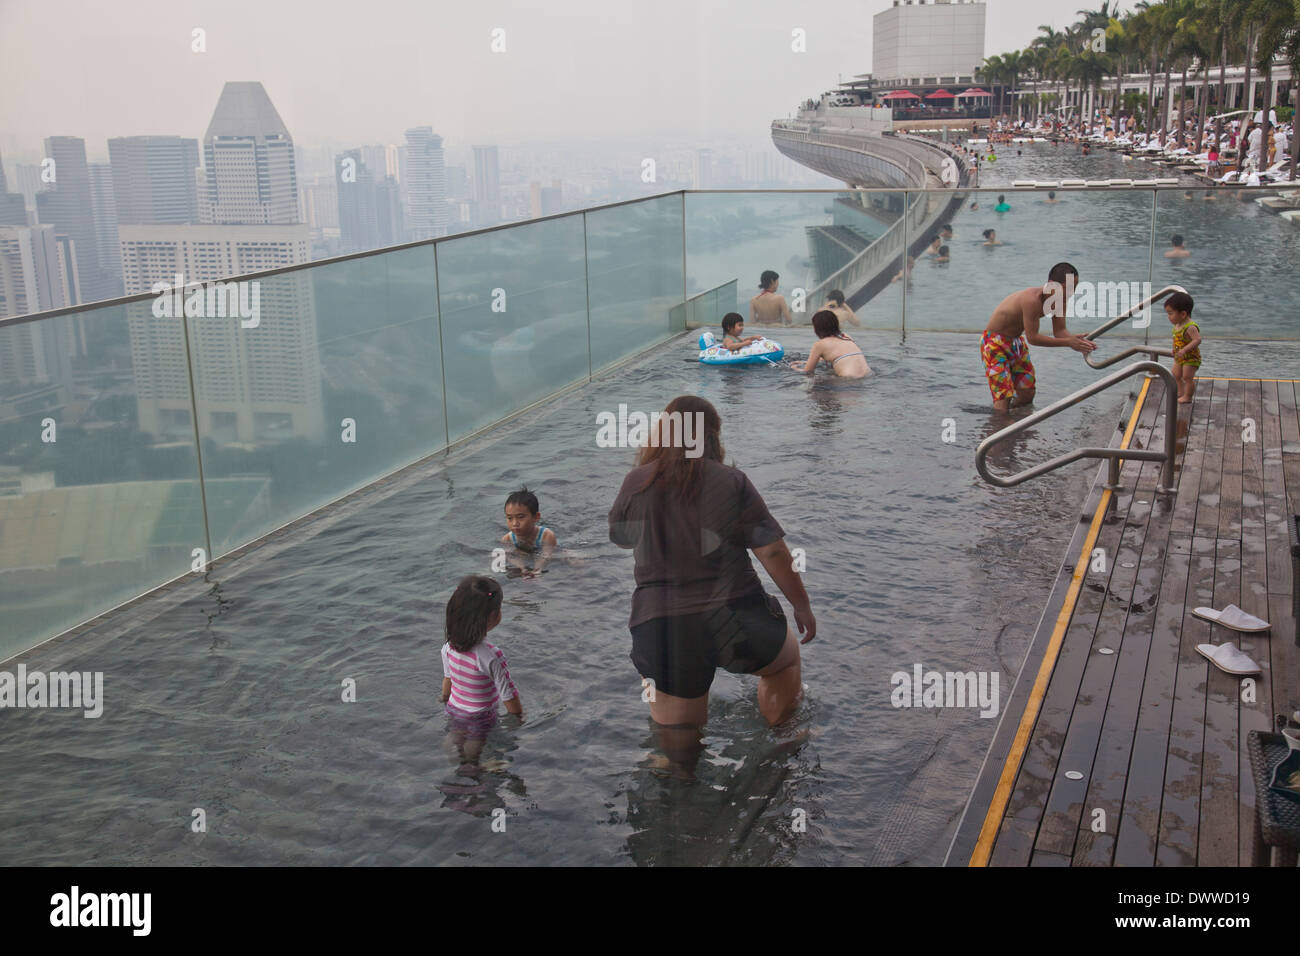 Guests Relax At The Infinity Pool At The Famous Marina Bay